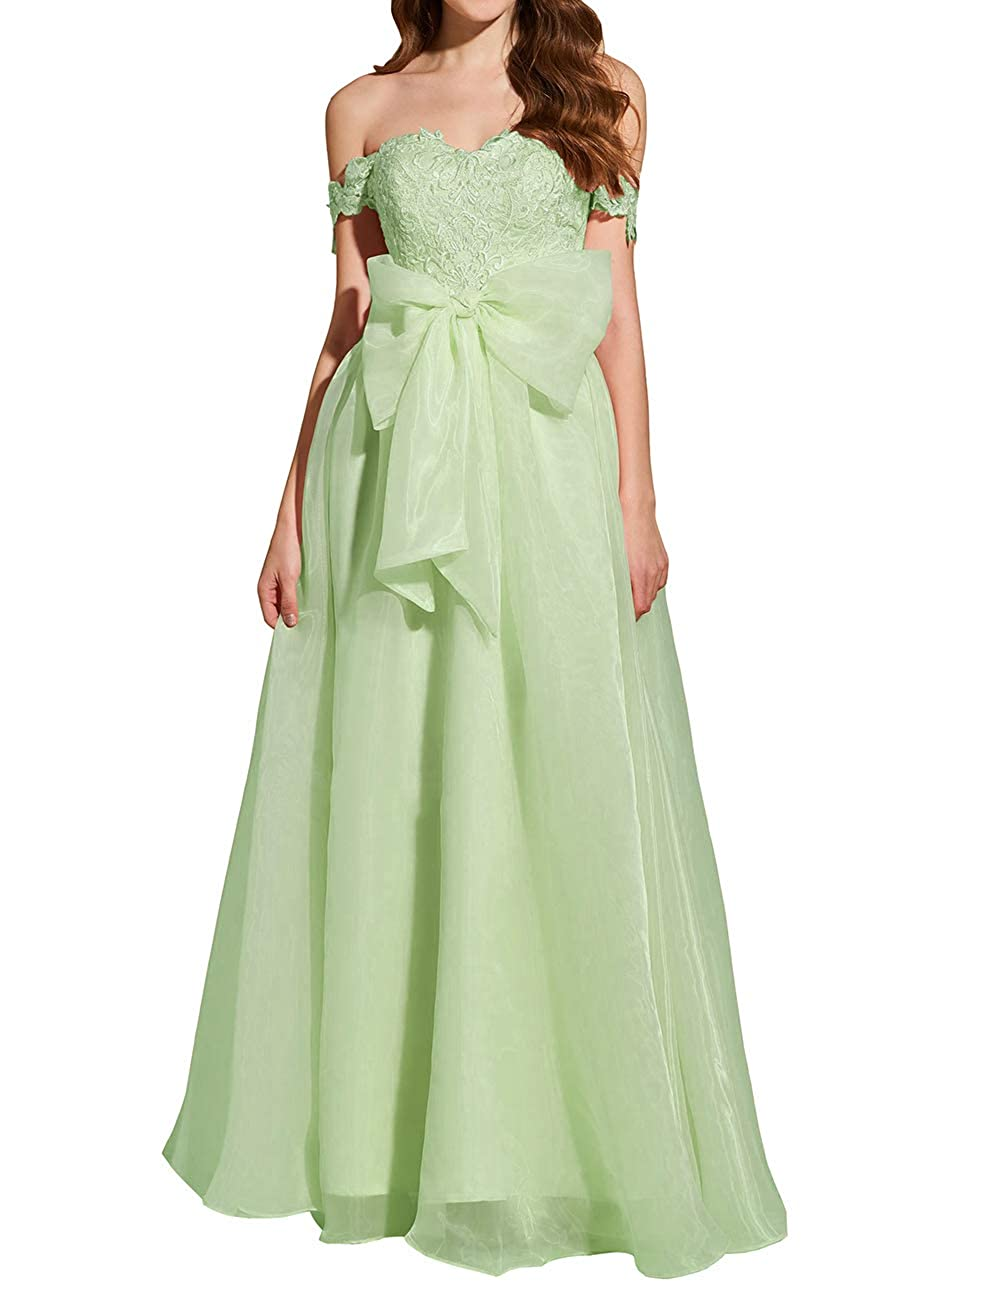 Sage Green Uther Formal Prom Dresses Off The Shoulder Appliques Long Evening Party Gowns Organza